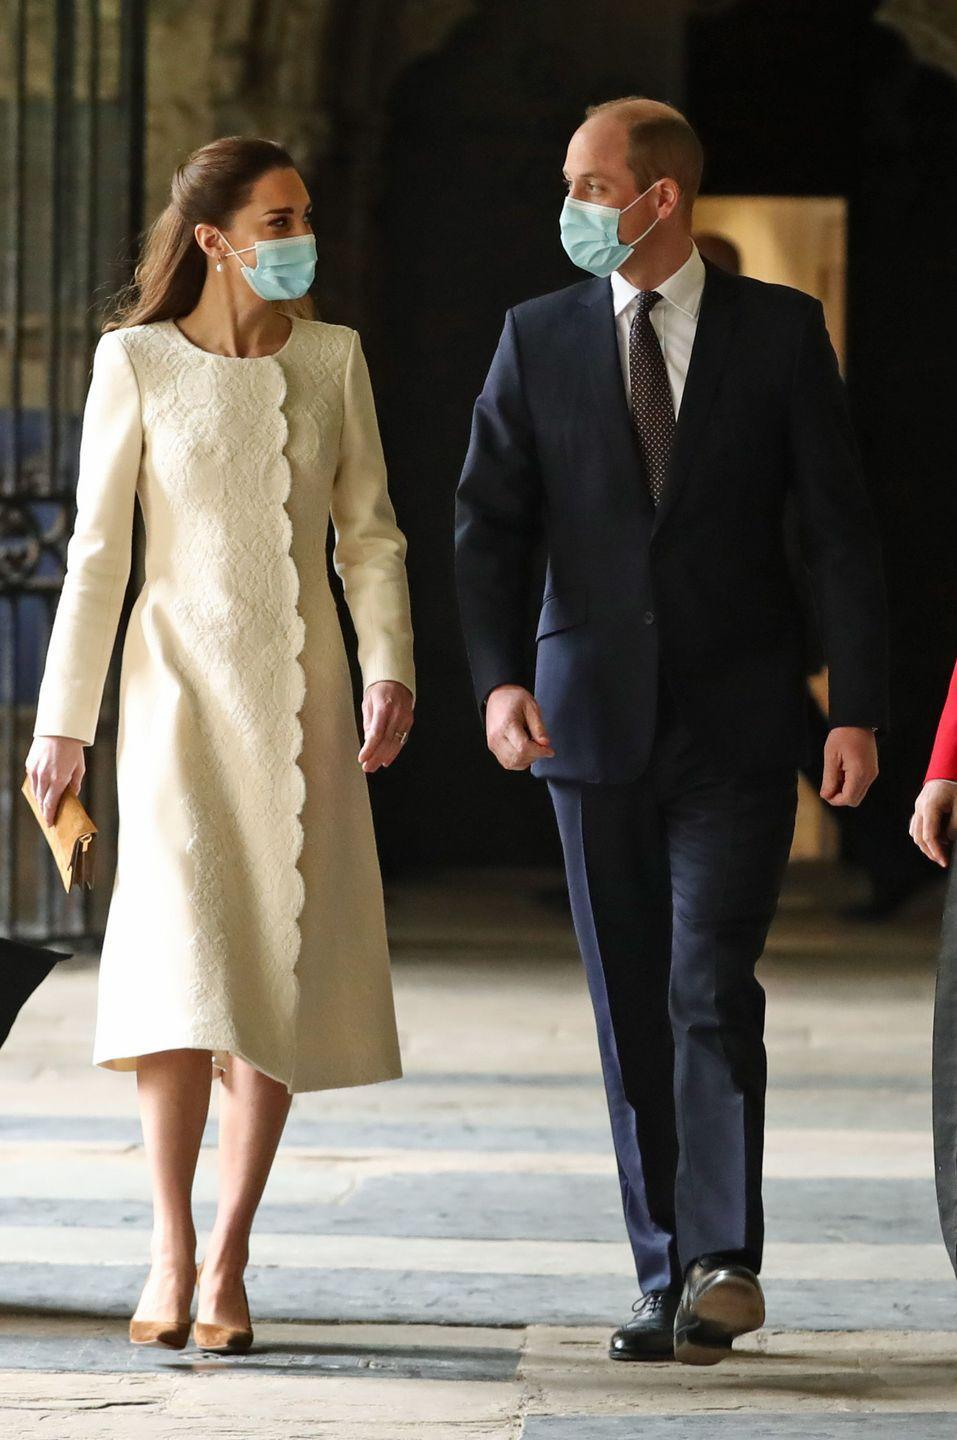 <p>Kate picked a long-sleeved cream dress with lace and scallop detailing during an appearance at Westminster Abbey's COVID-19 vaccination center.</p>